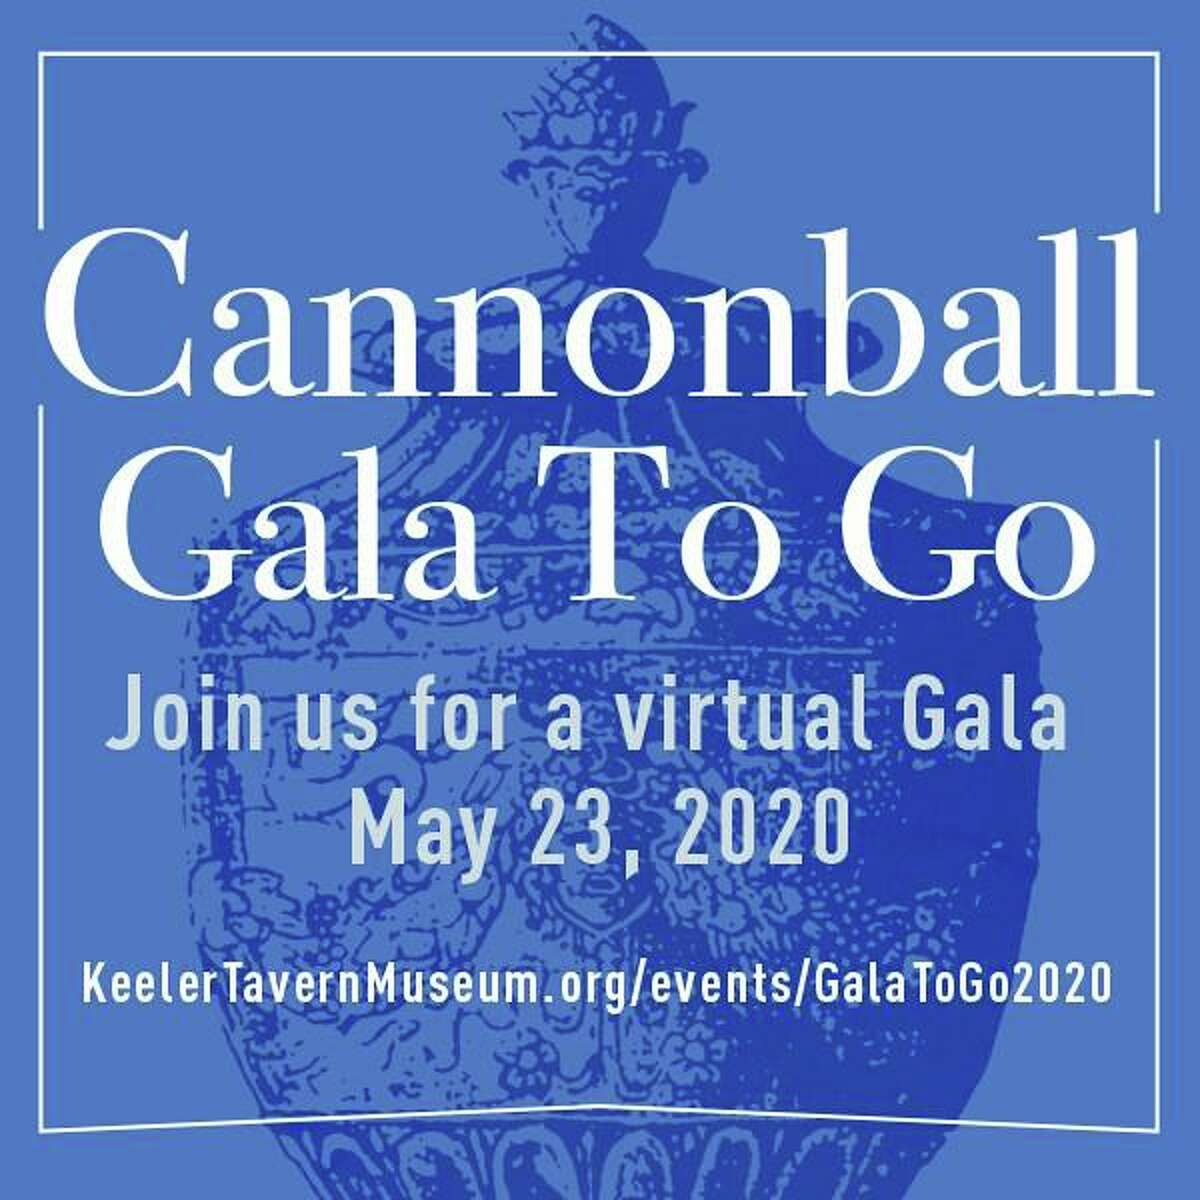 Keeler Tavern Museum & History Center's Cannonball Gala To Go set for Saturday, May 23, features a gourmet dinner to go by Sarah Bouïssou Catering @ Bernard's and online entertainment by two local celebrities.